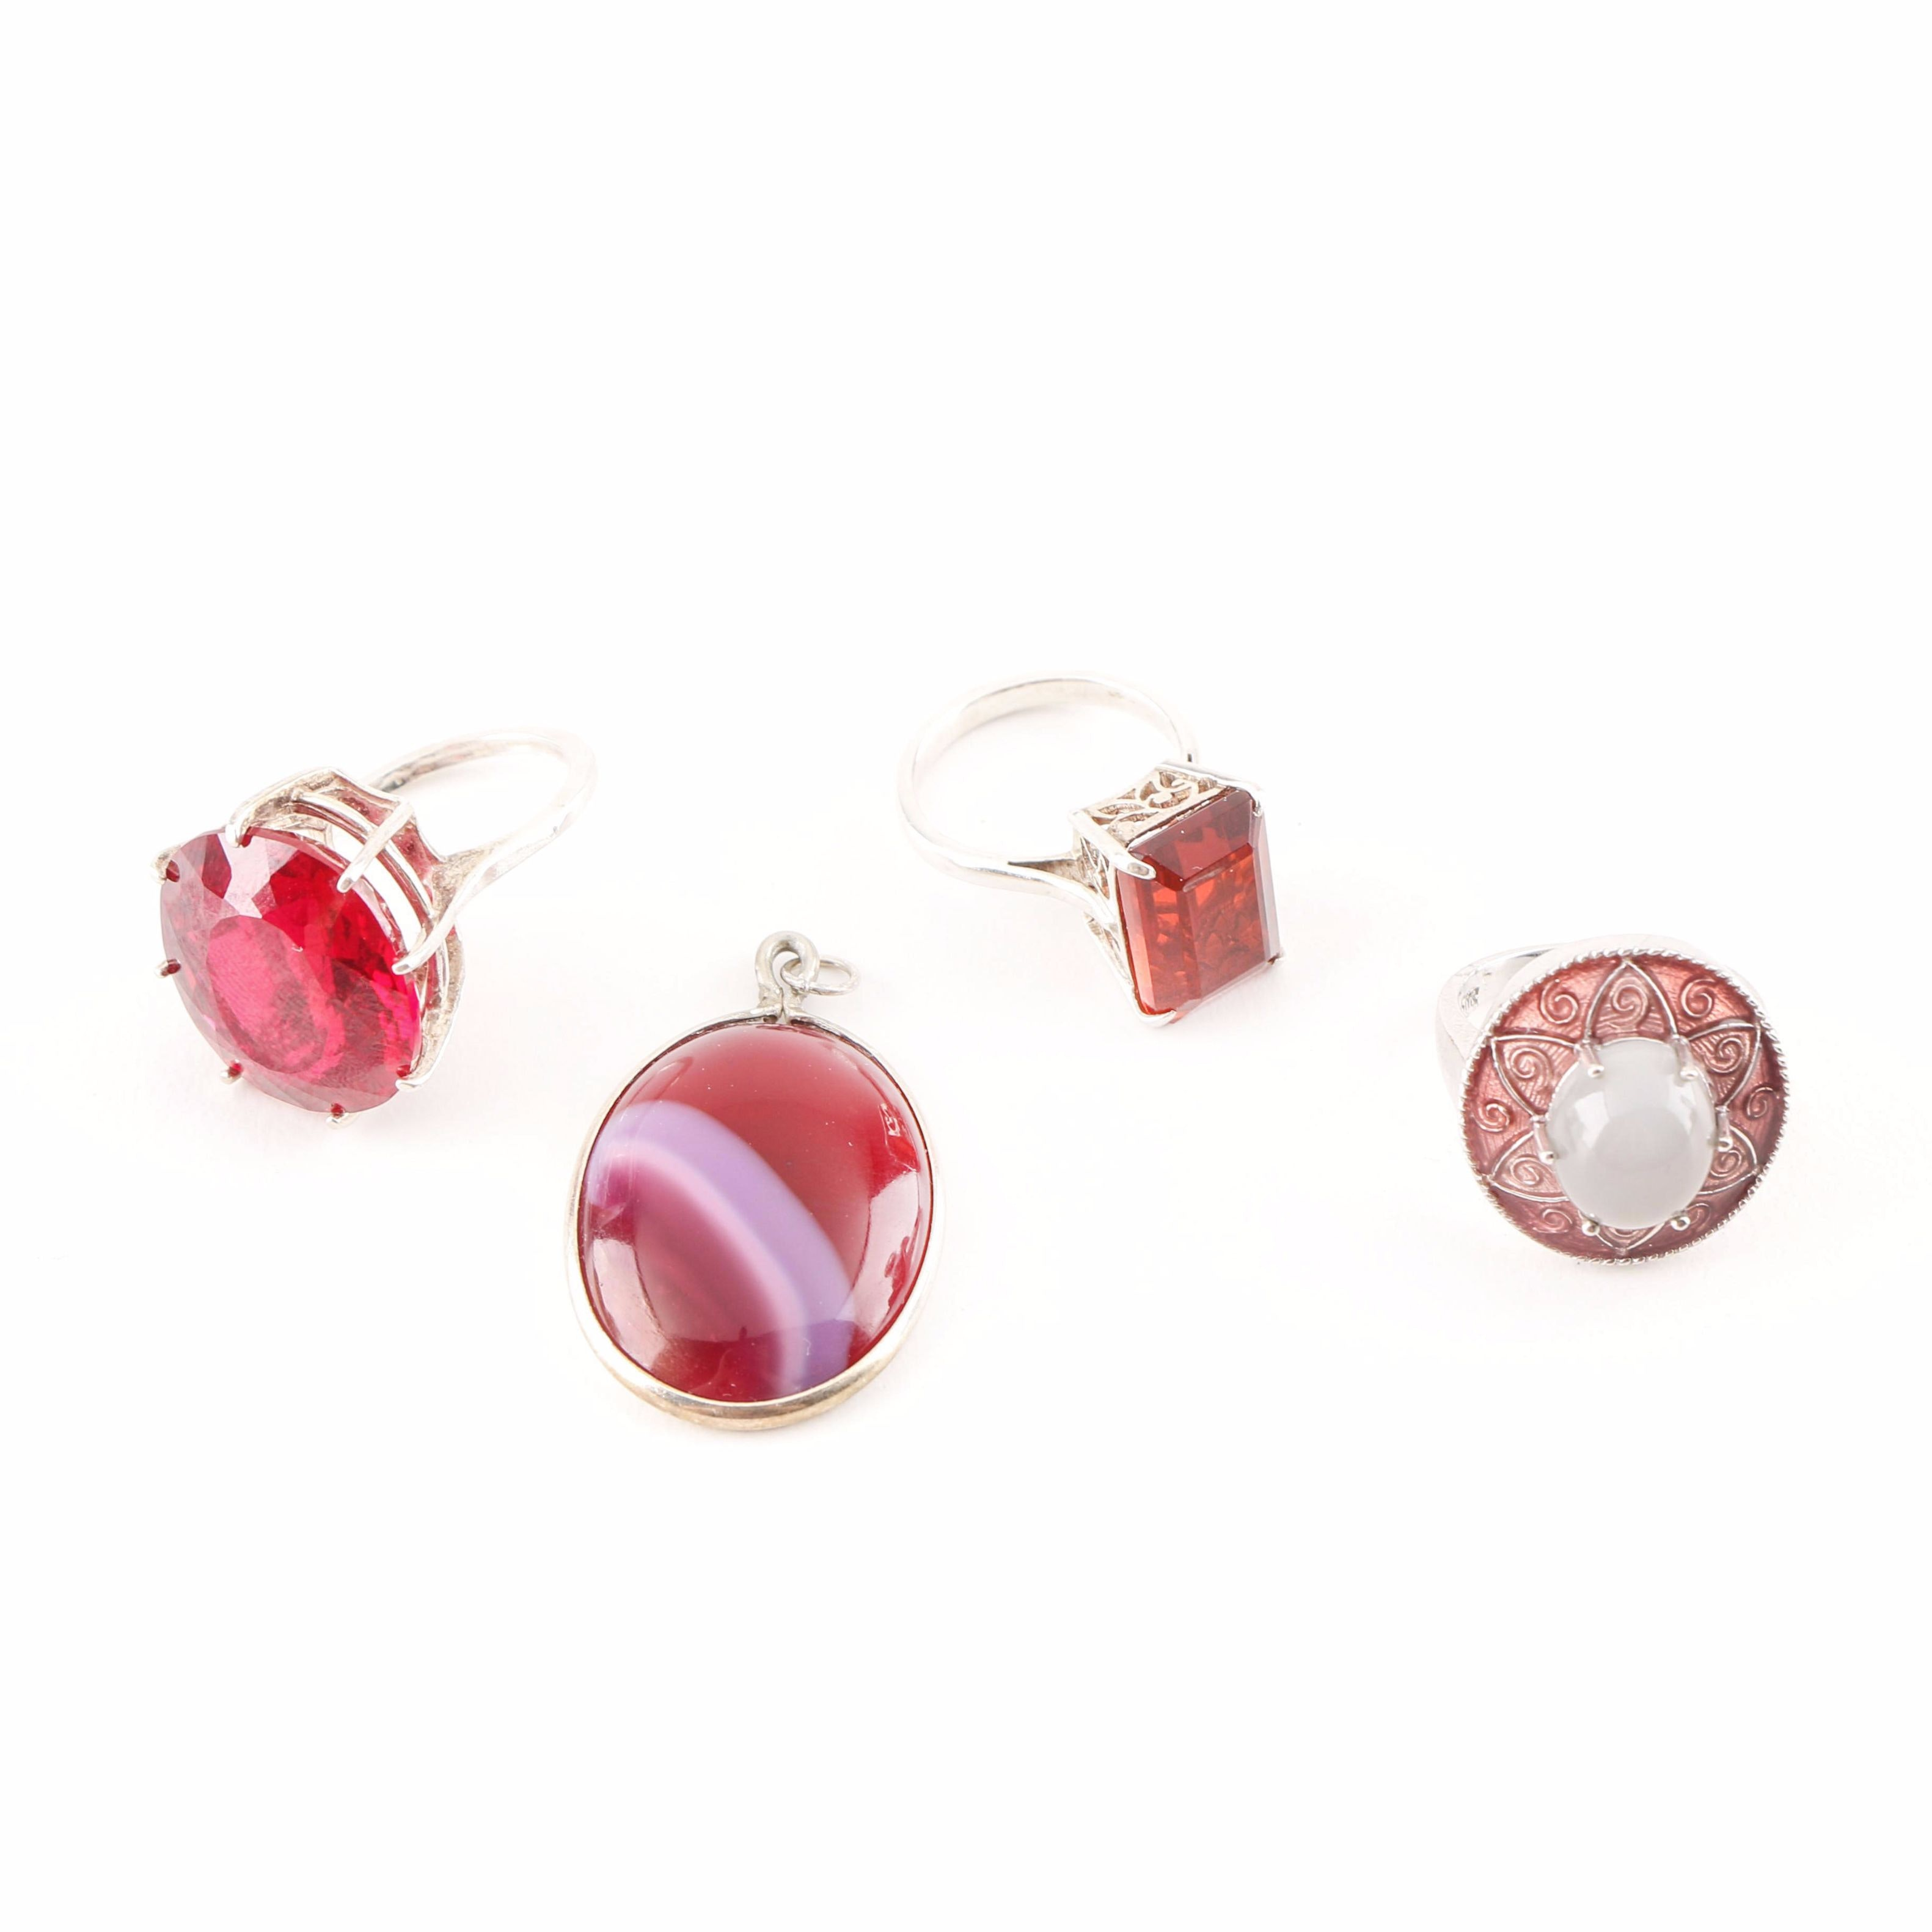 Grouping of Sterling Silver Rings and a Pendant With Accents